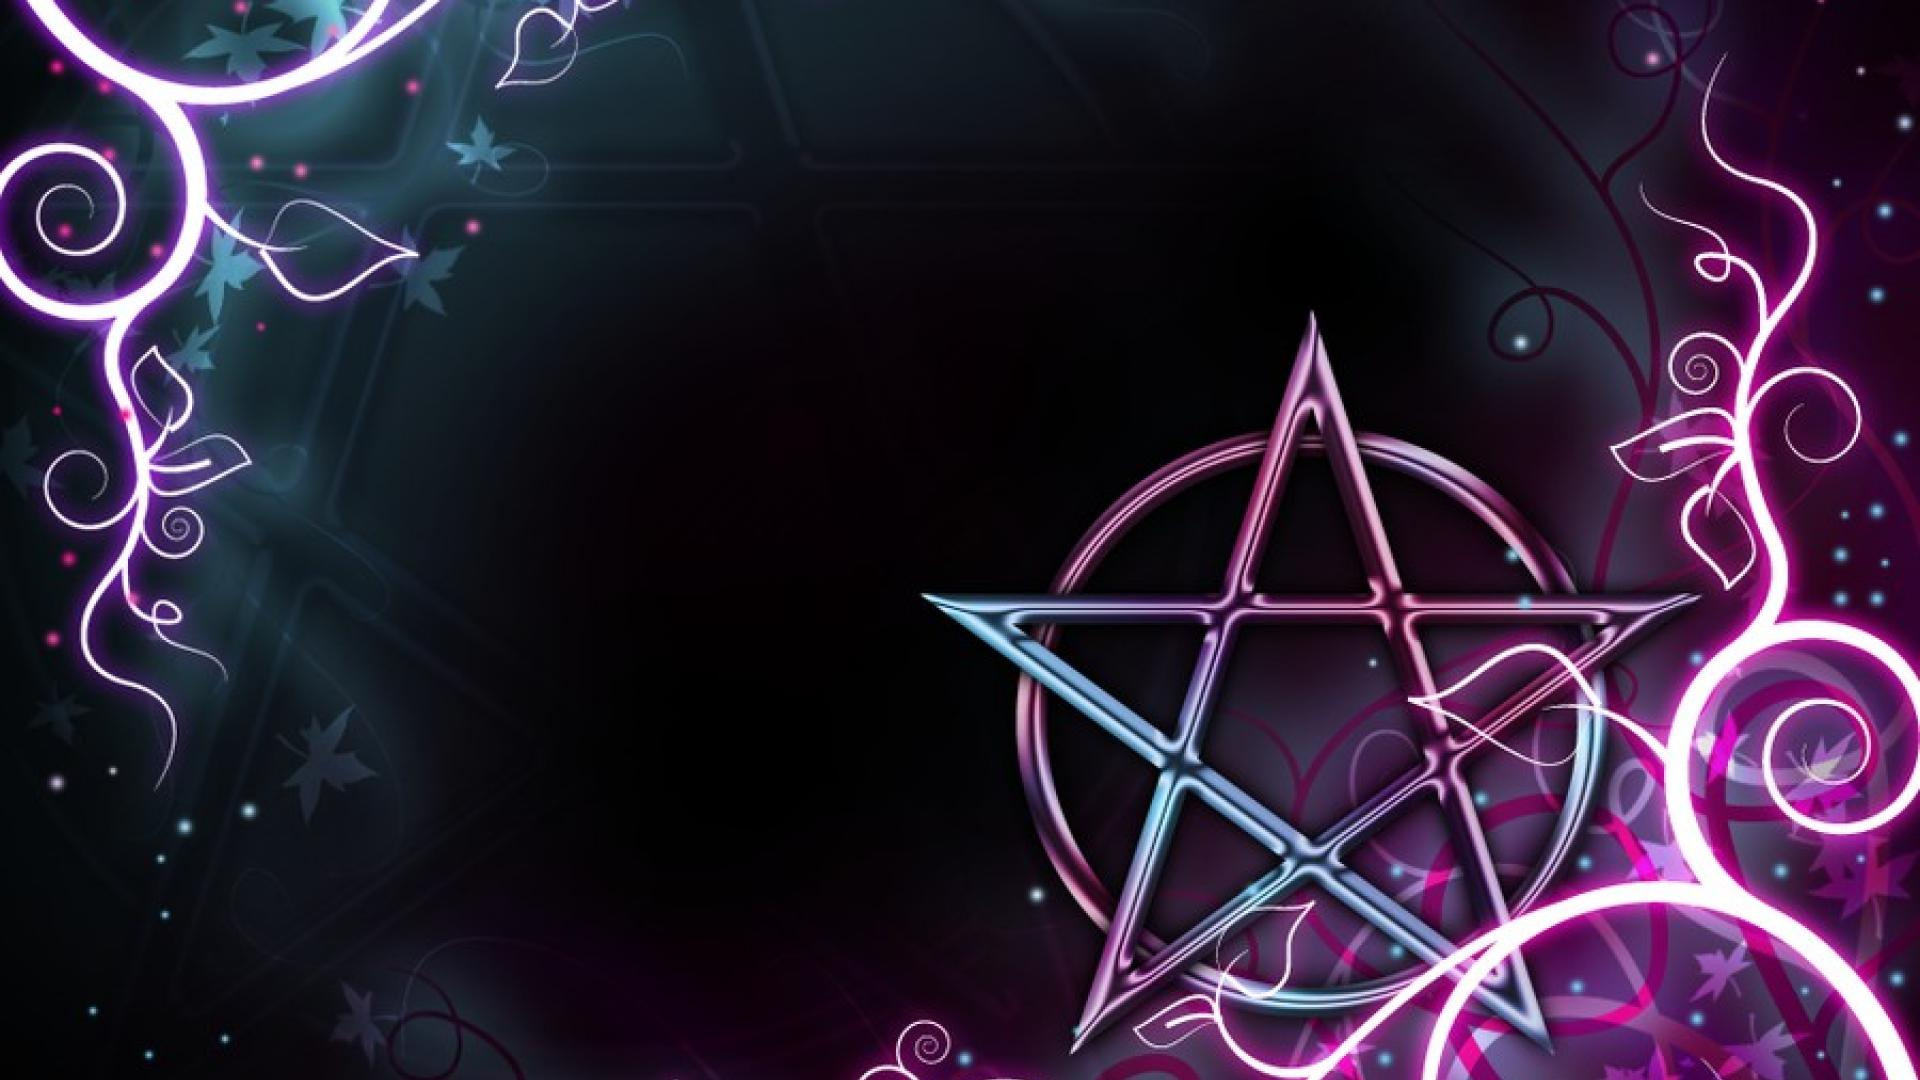 Pentagram wallpaper 132101 1920x1080